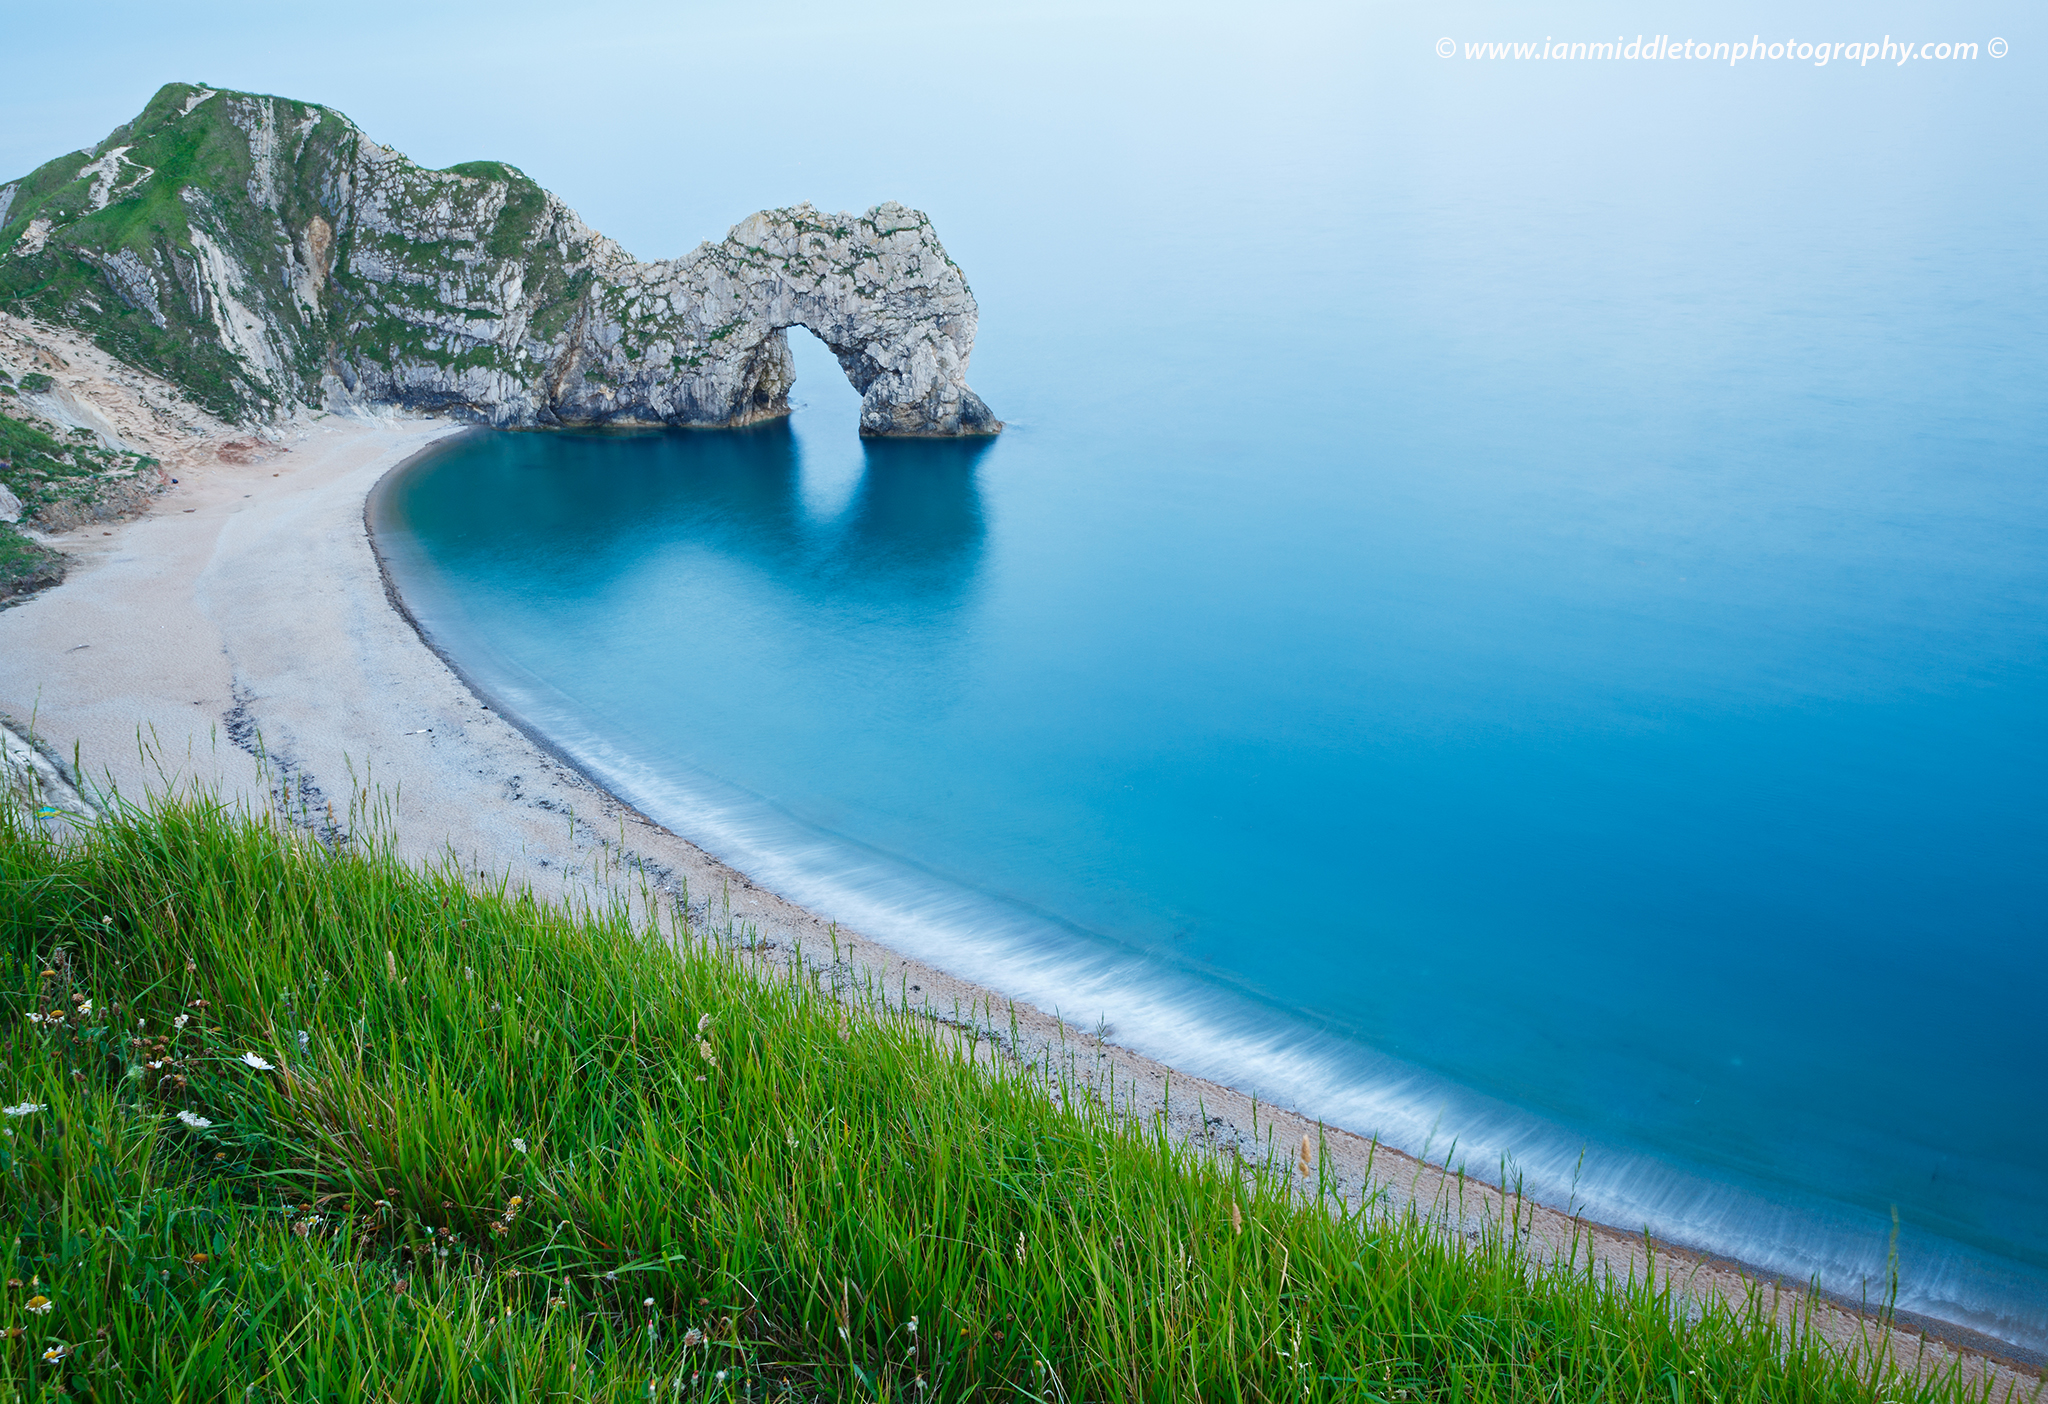 Evening view of Durdle Door beach, Dorset, England. Durdle door is one of the many stunning locations to visit on the Jurassic coast in southern England.